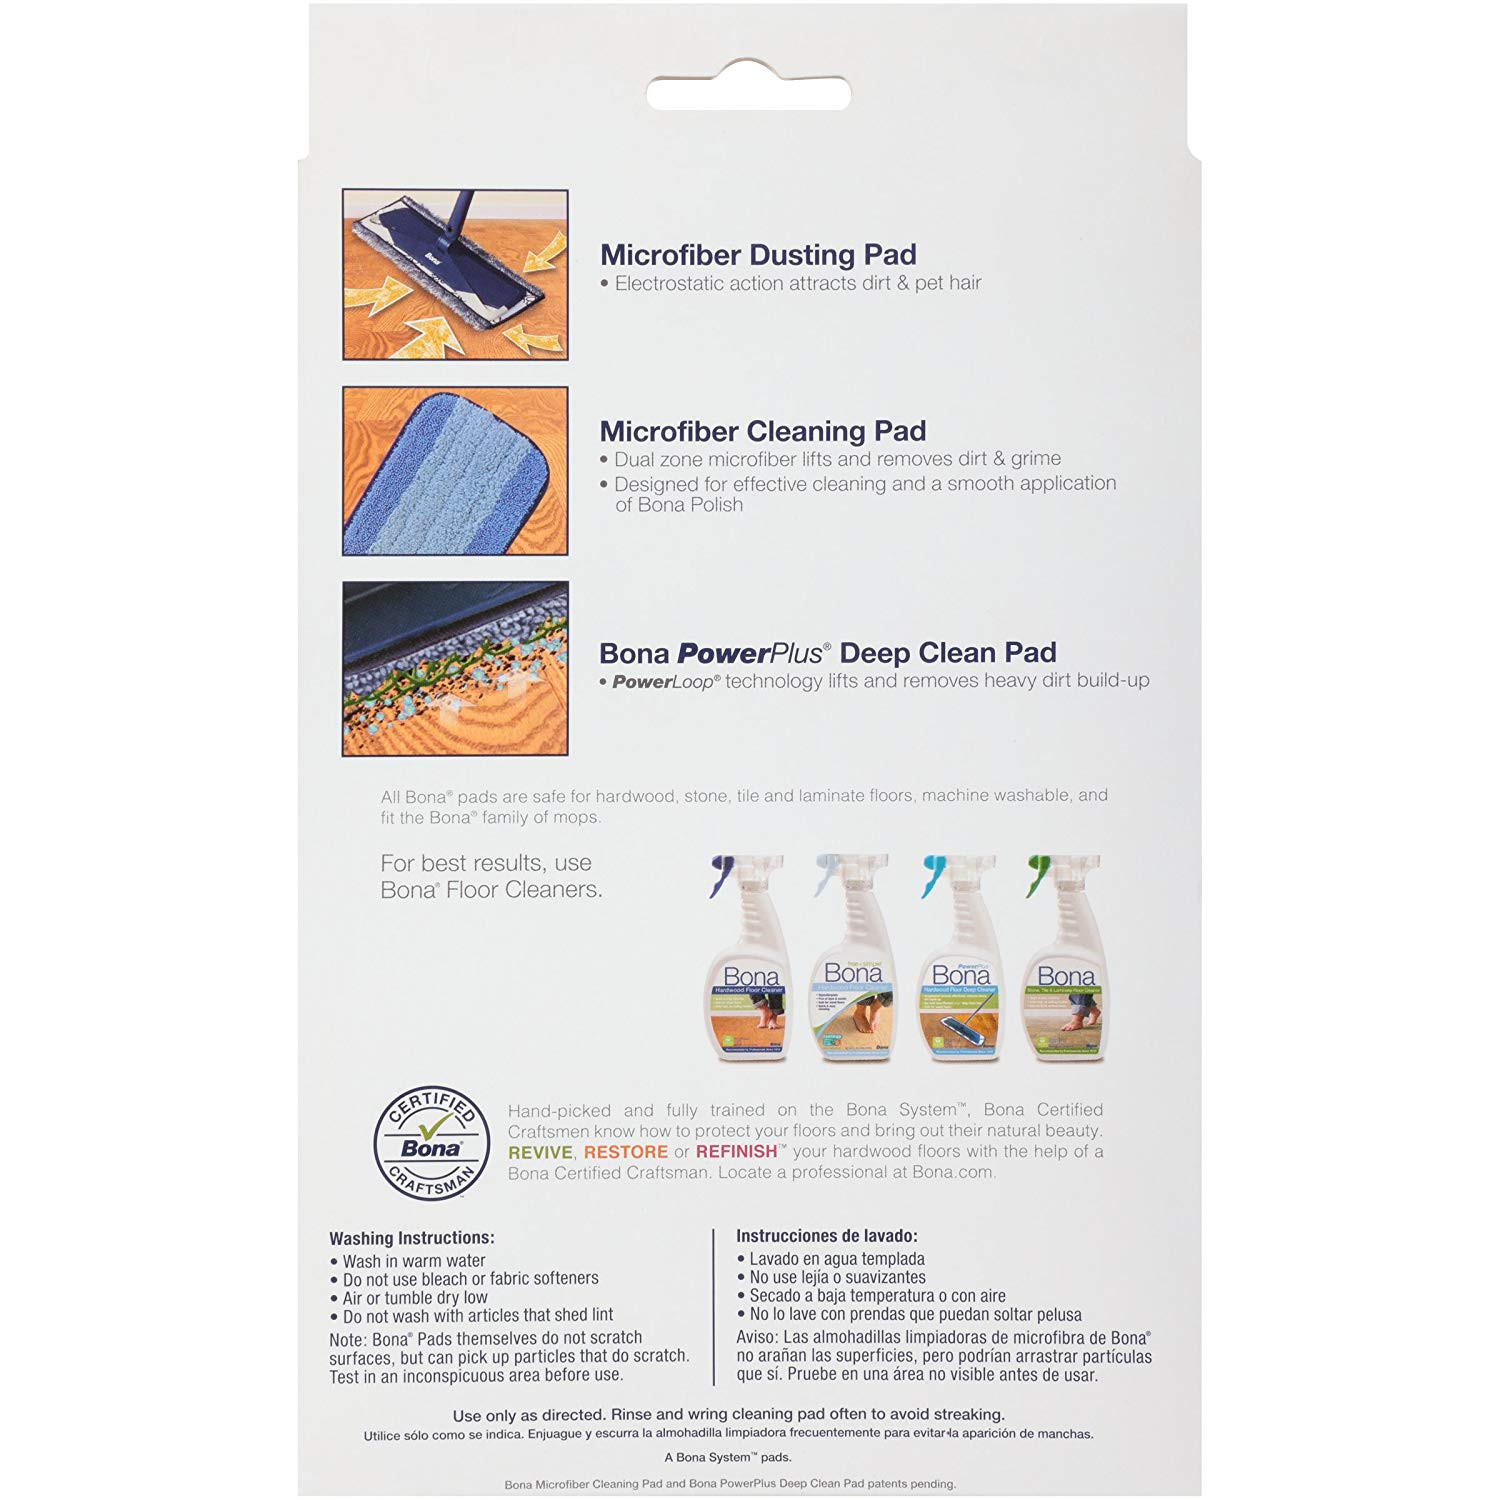 Hardwood Floor Buffing Pads Of Amazon Com Bona 3 Piece Microfiber Pad Pack Home Kitchen within 81kp7f4vi9l Sl1500